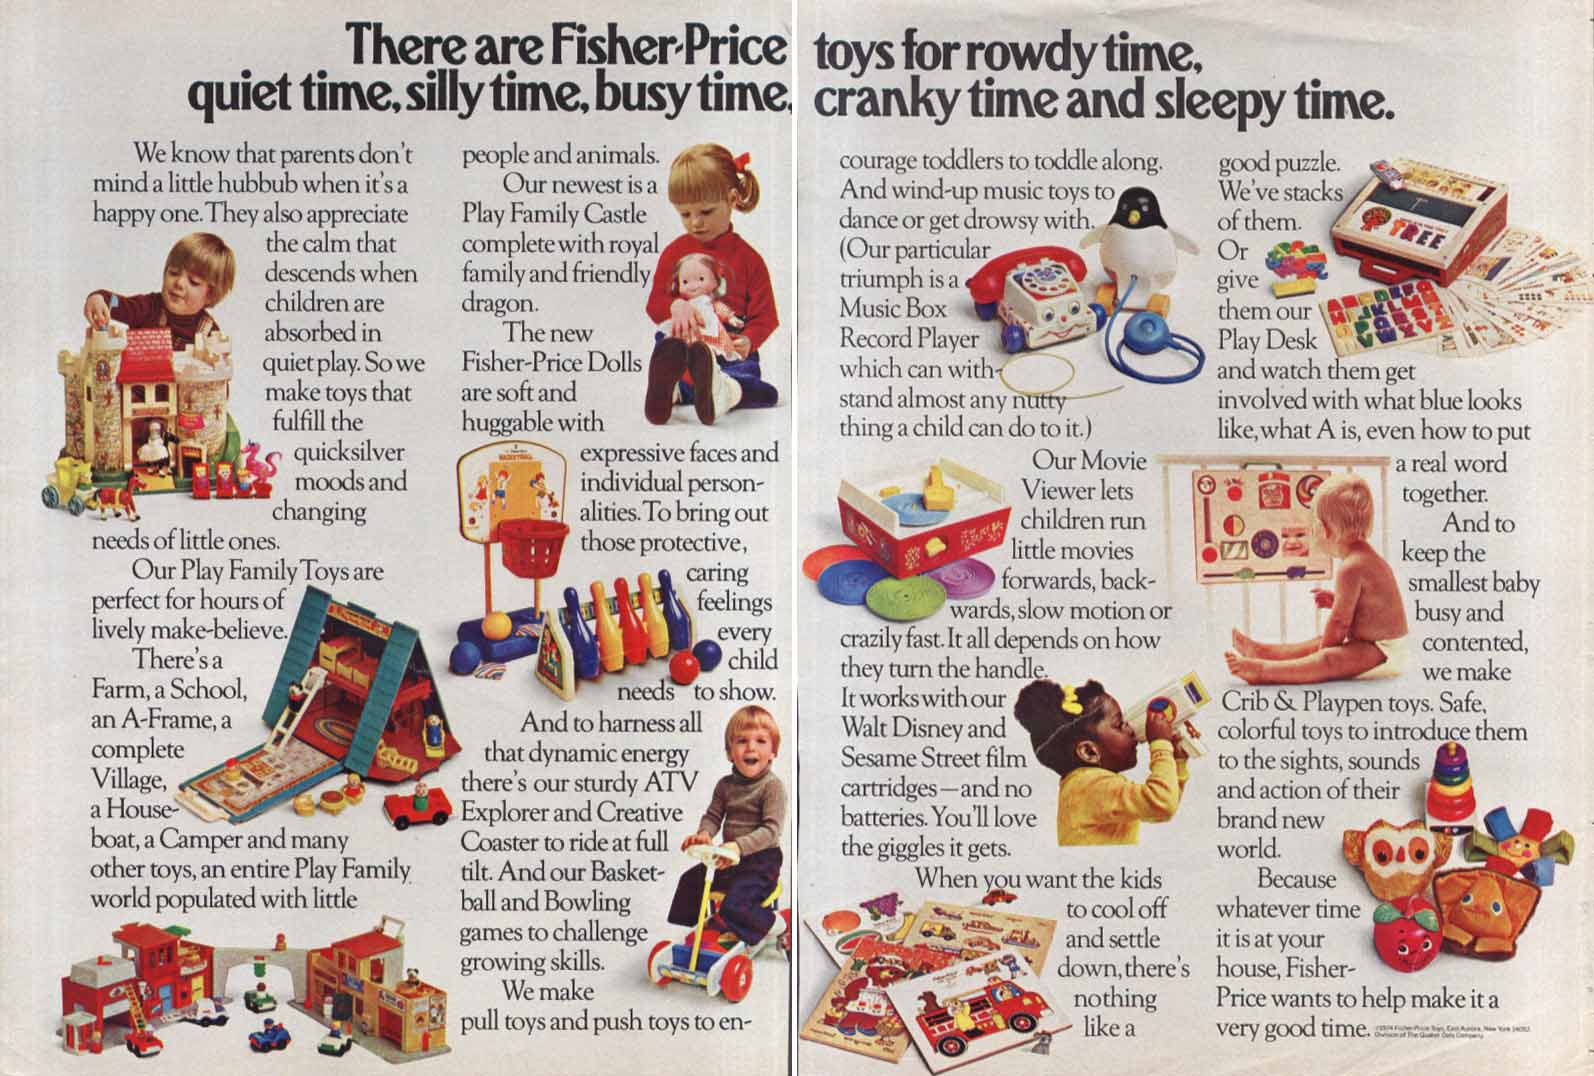 Fisher-Price quiet rowdy silly cranky time toy ad 1974